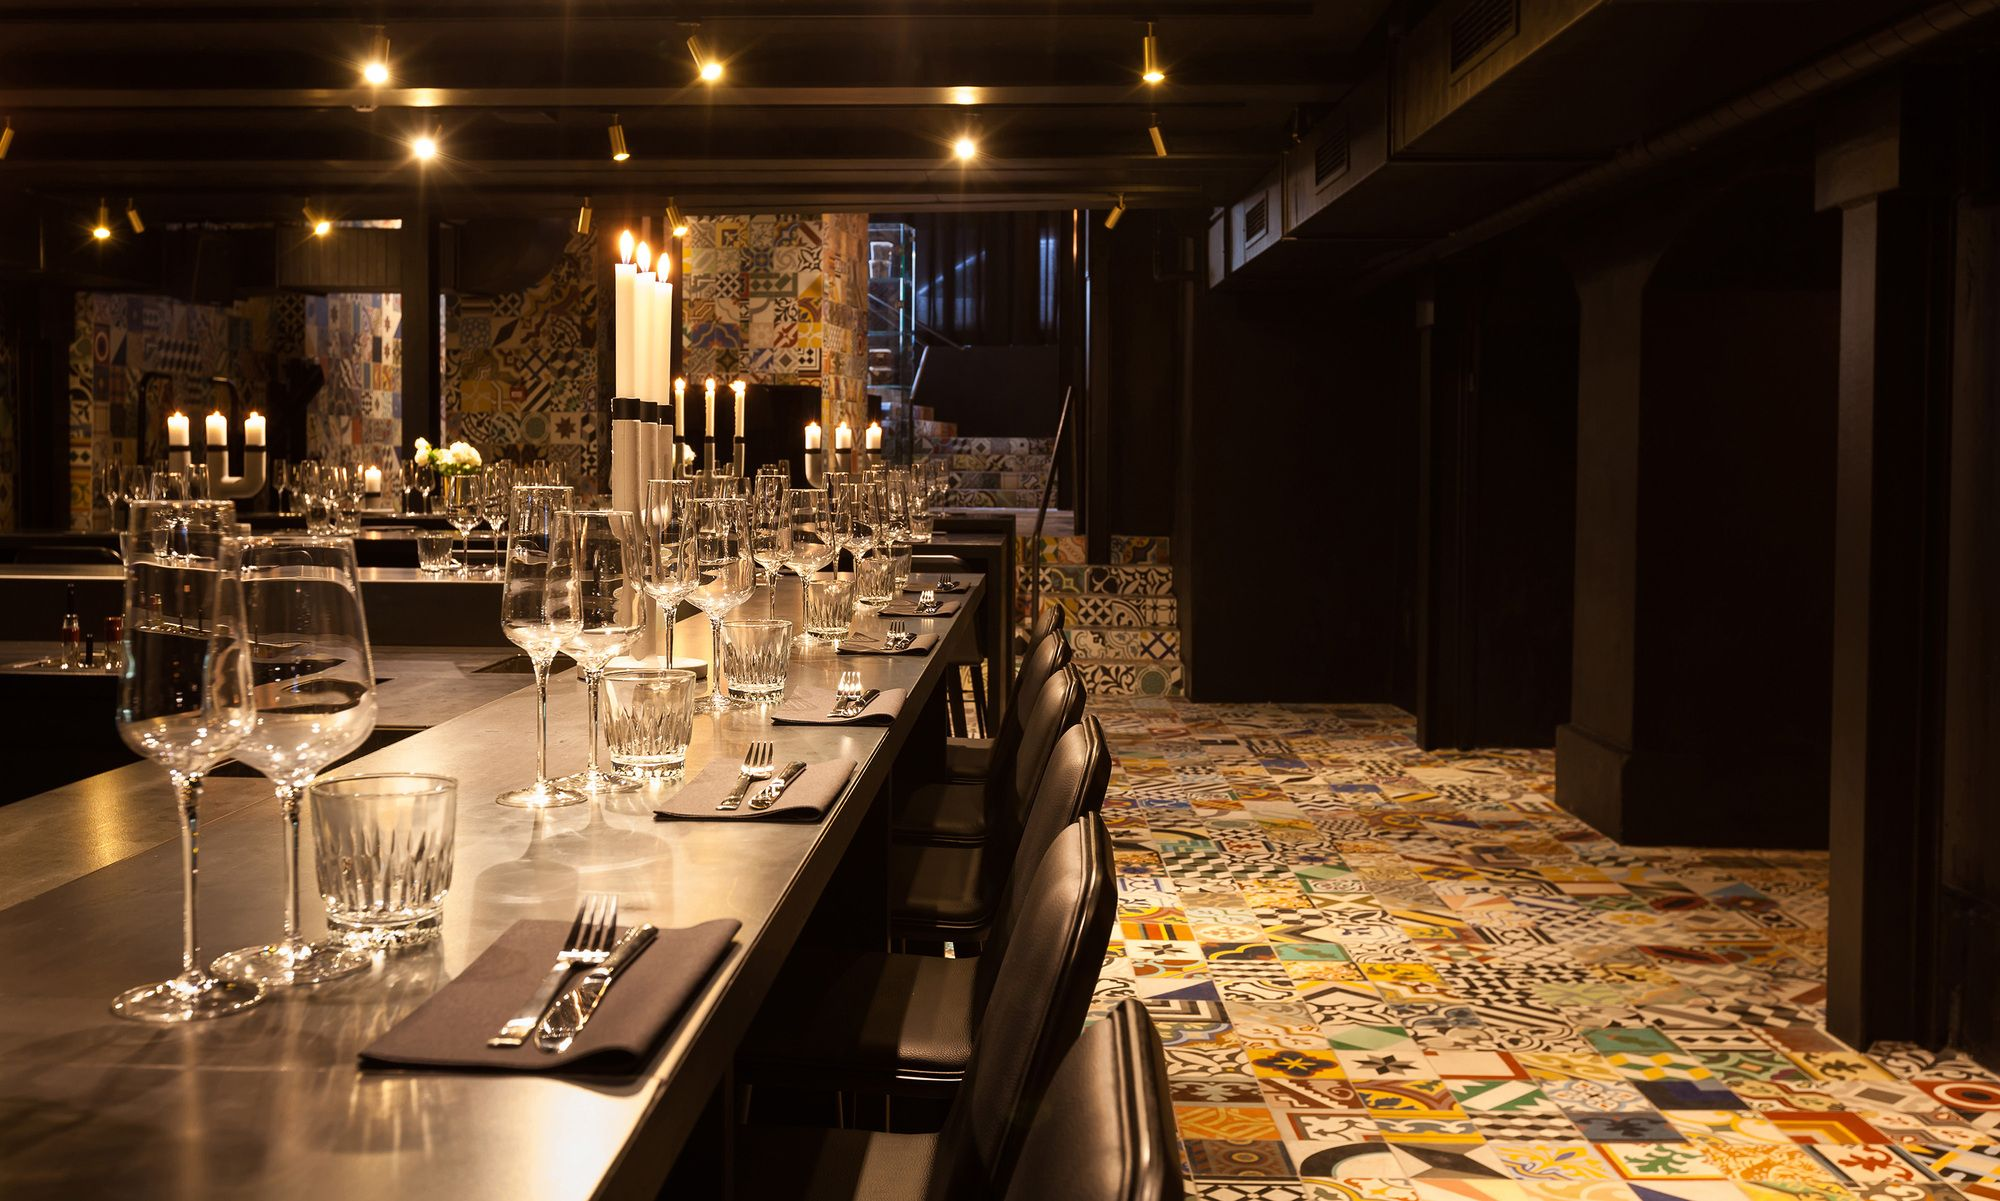 How a dark basement became a flamboyant restaurant with a colorful interior